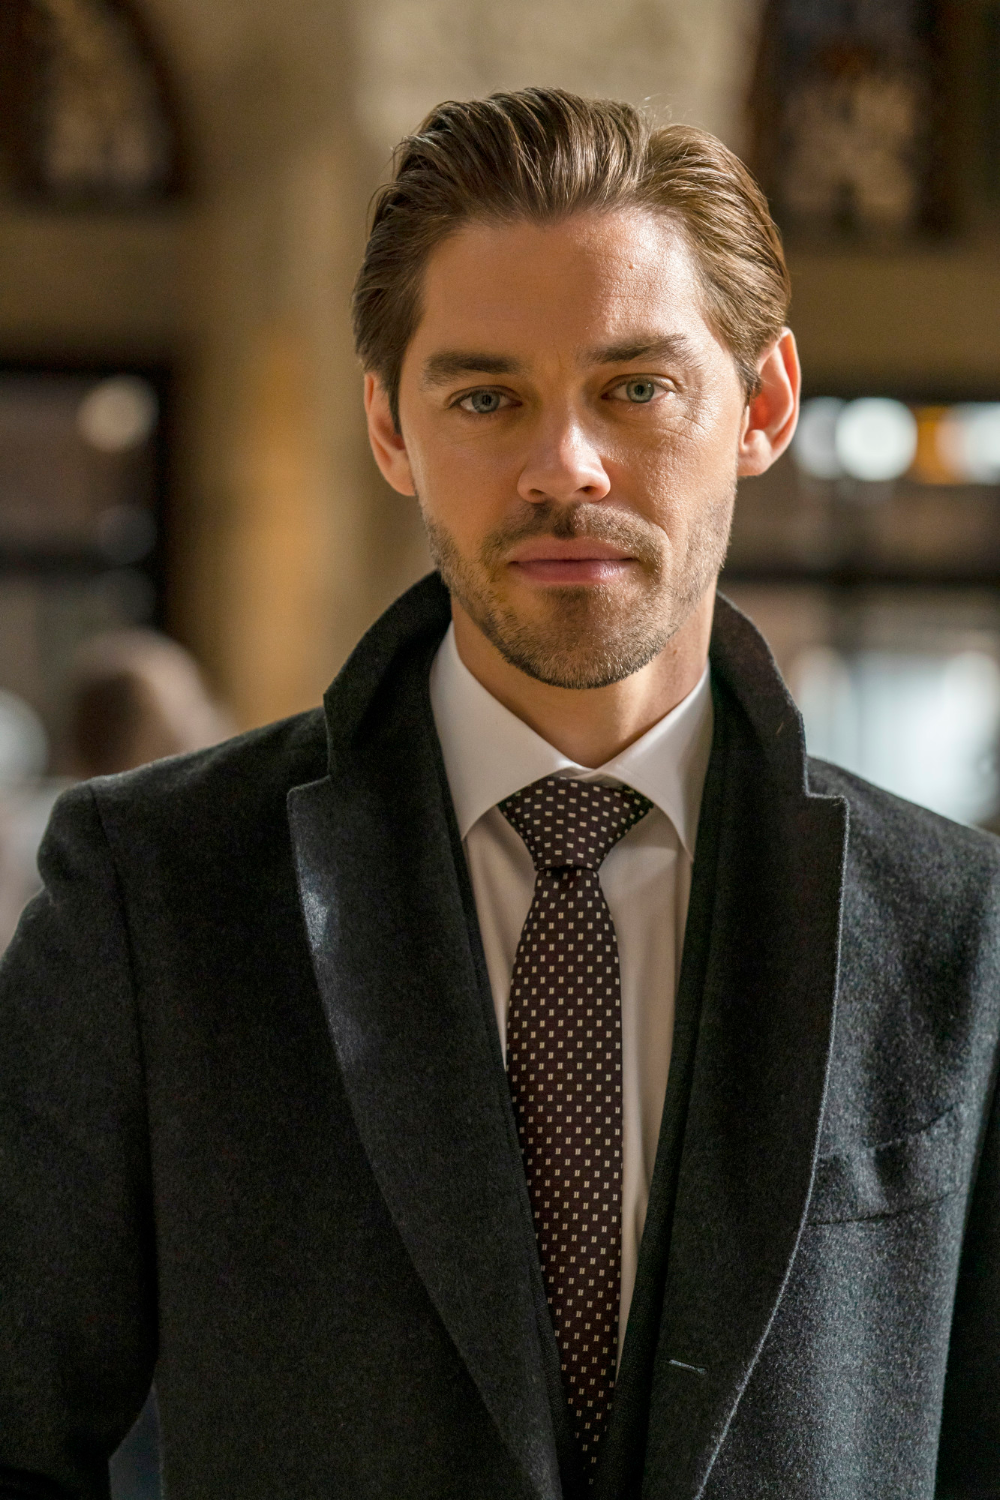 1x19 Prodigal Son Tom Payne In The Professionals Episode Of Prodigal Son Airing Monday April 20 9 01 10 00 Pm Et Pt On Fo In 2020 Prodigal Son Prodigal Tom Payne